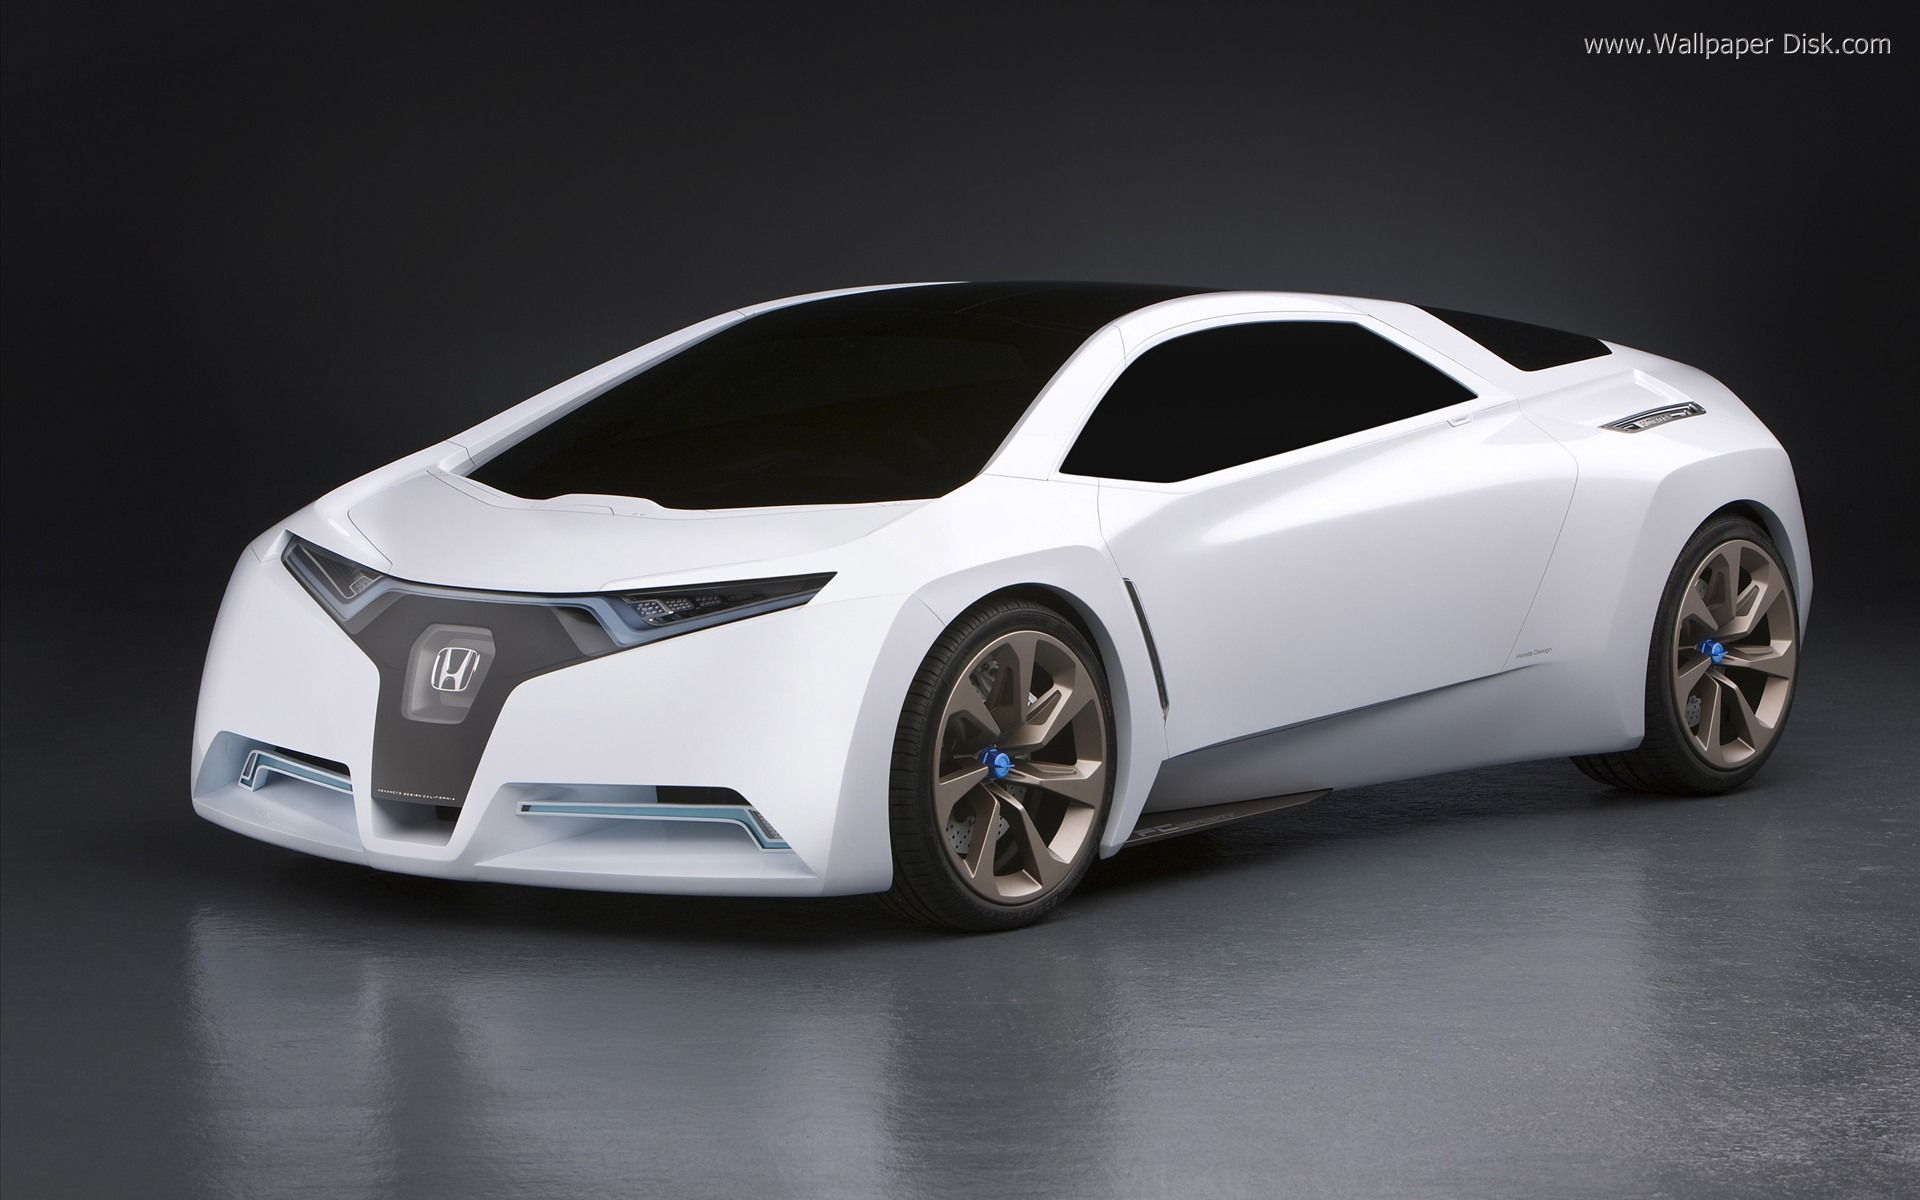 Best LATEST WHITE HONDA CAR desktop wallpapers background collection 1920x1200